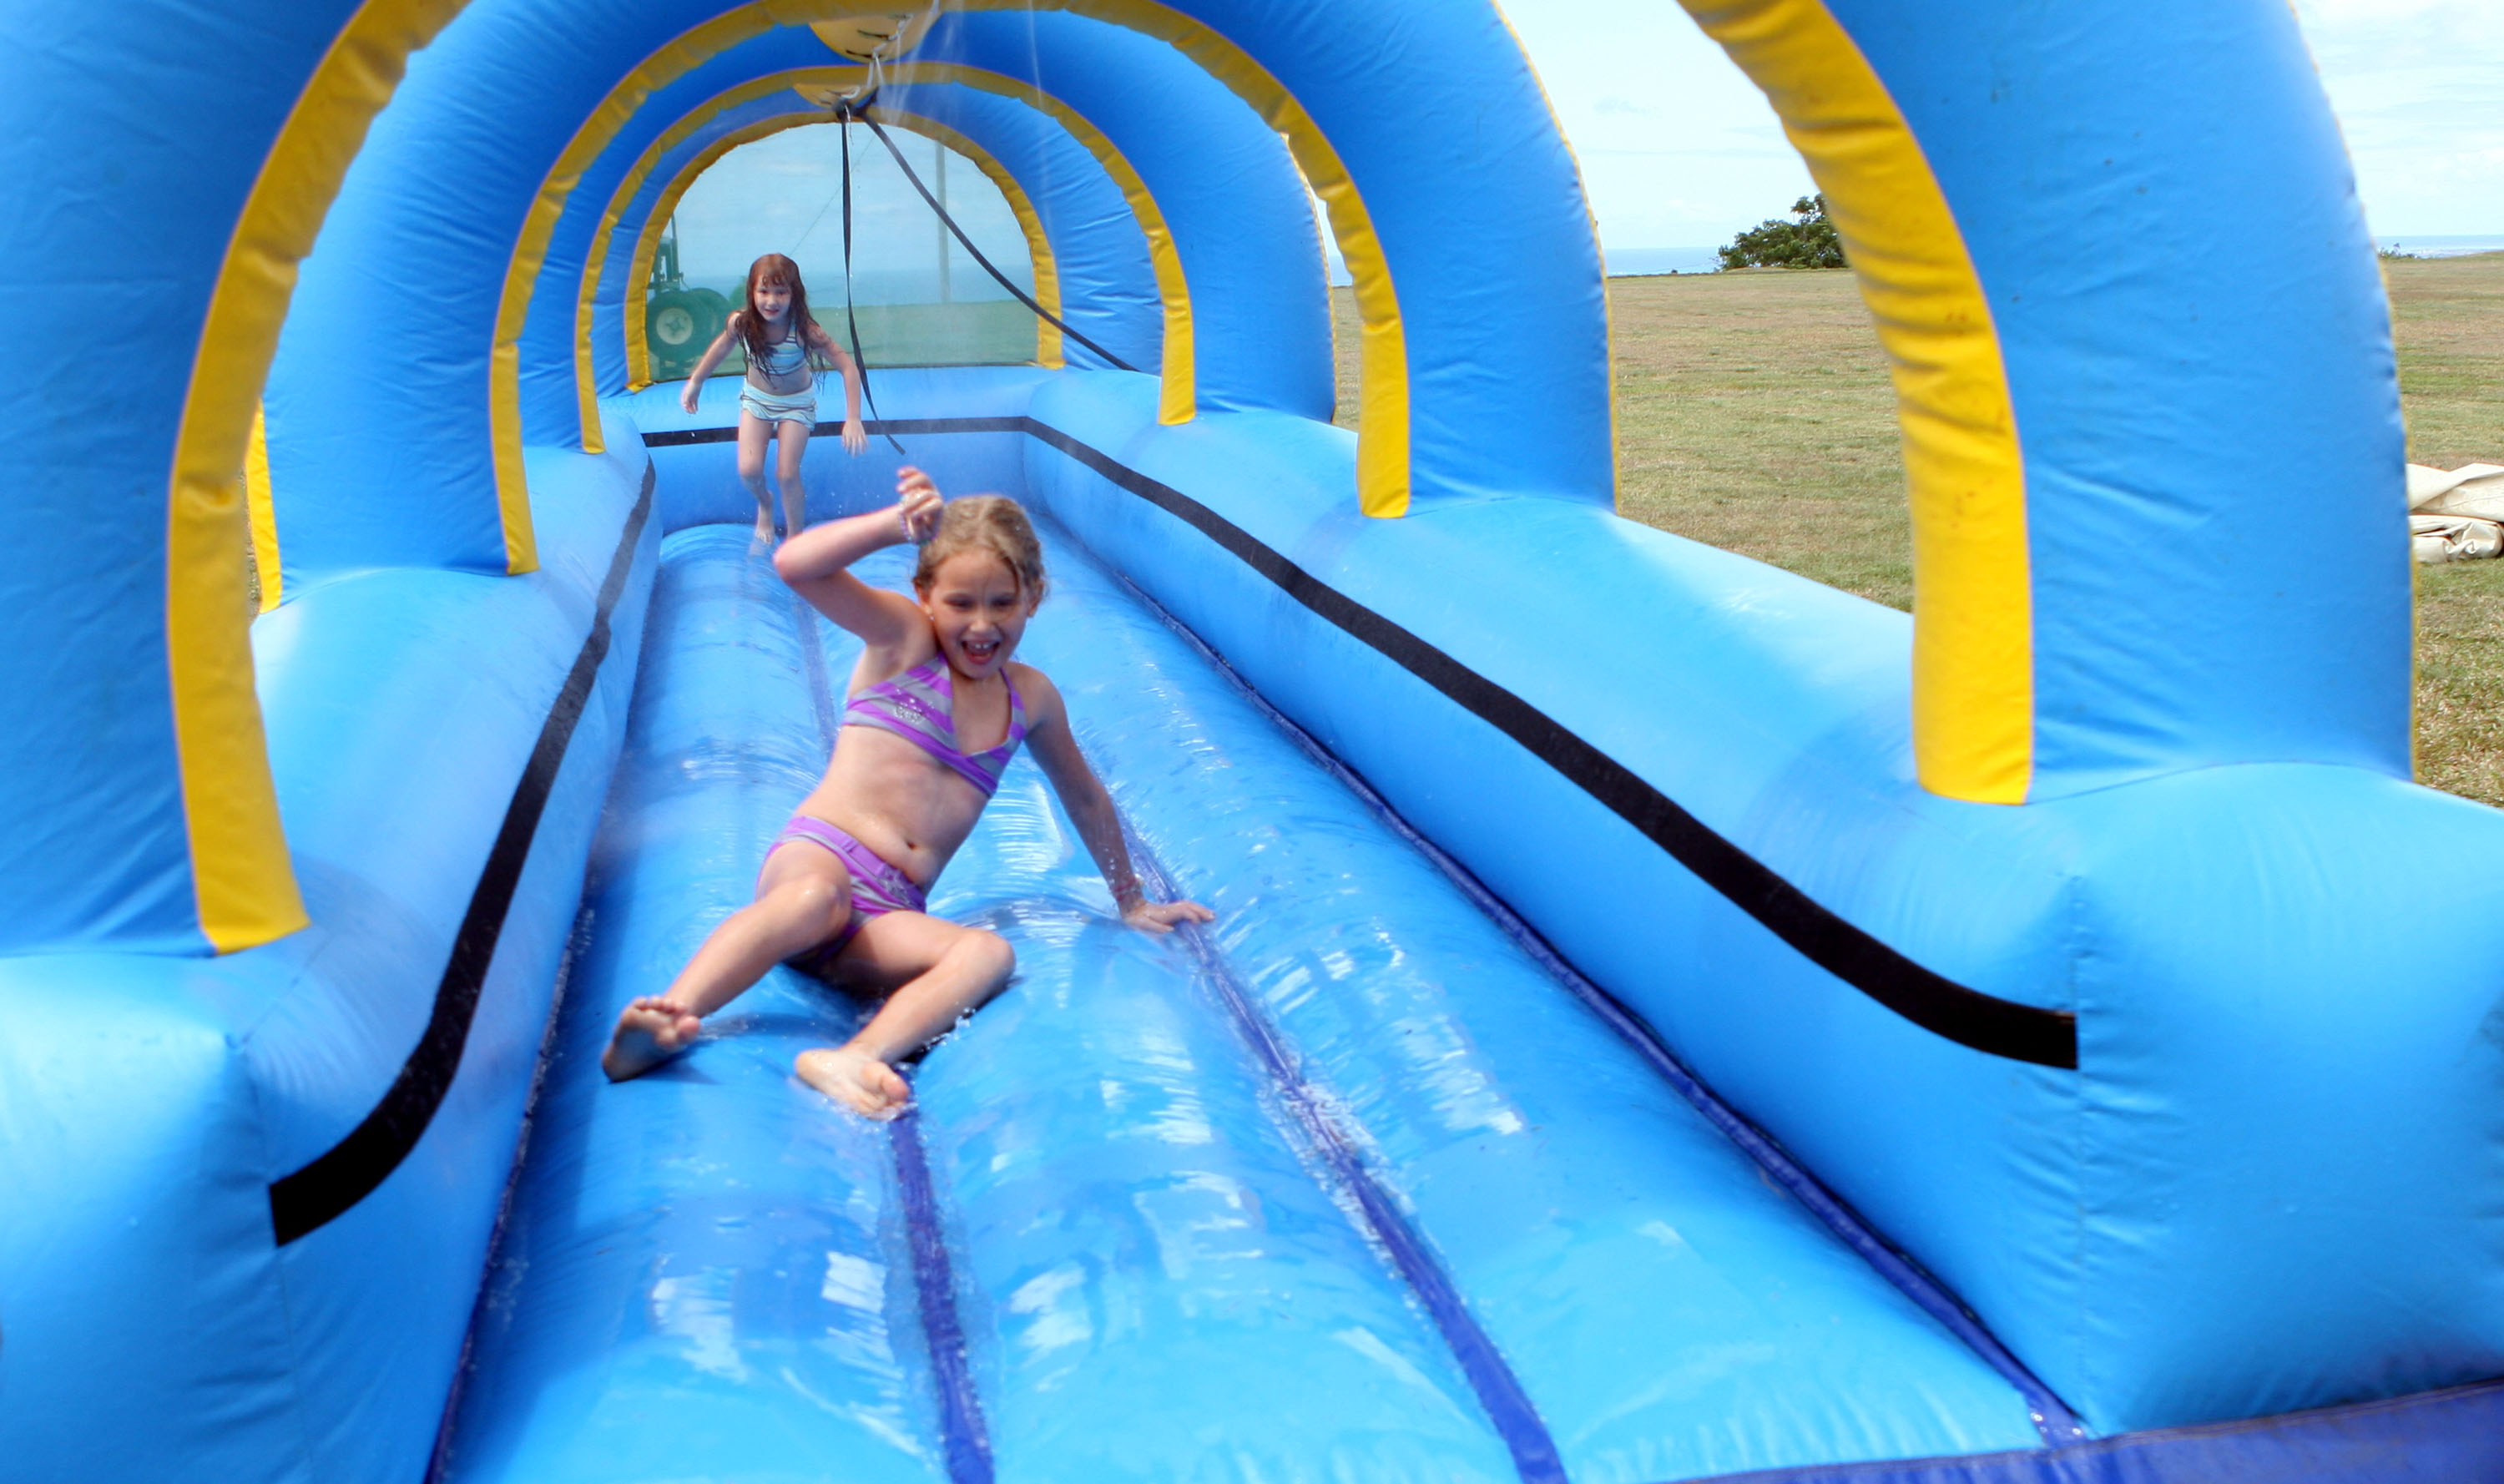 5 best backyard water games for all ages family fun u0026 activities